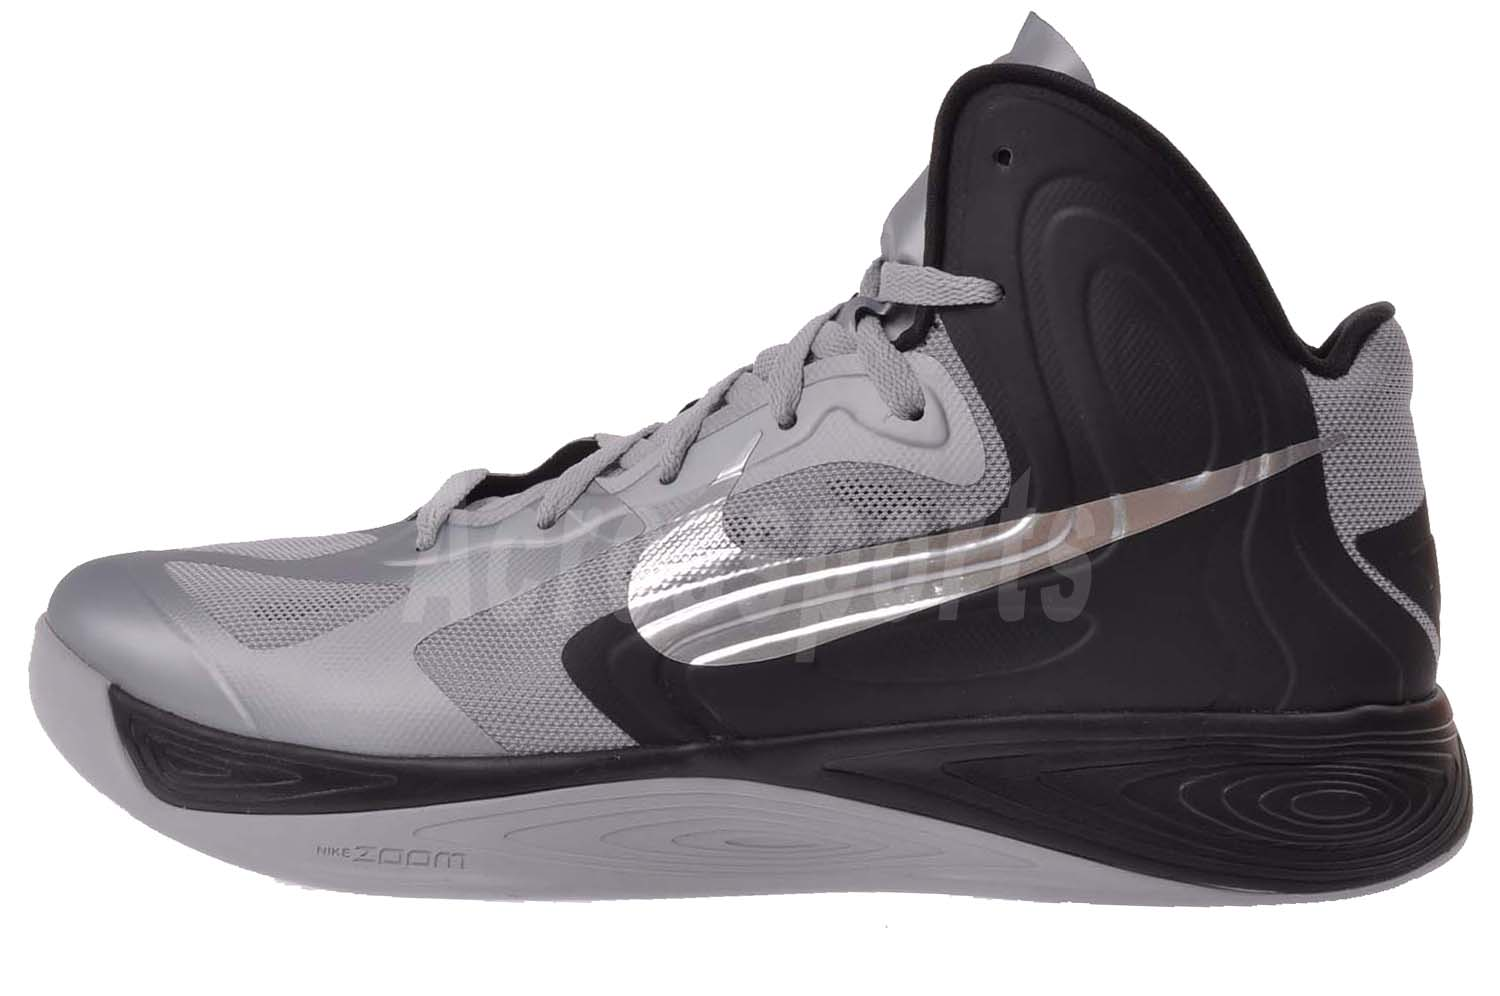 nike hyperfuse 2012 mens basketball shoes wolf grey black